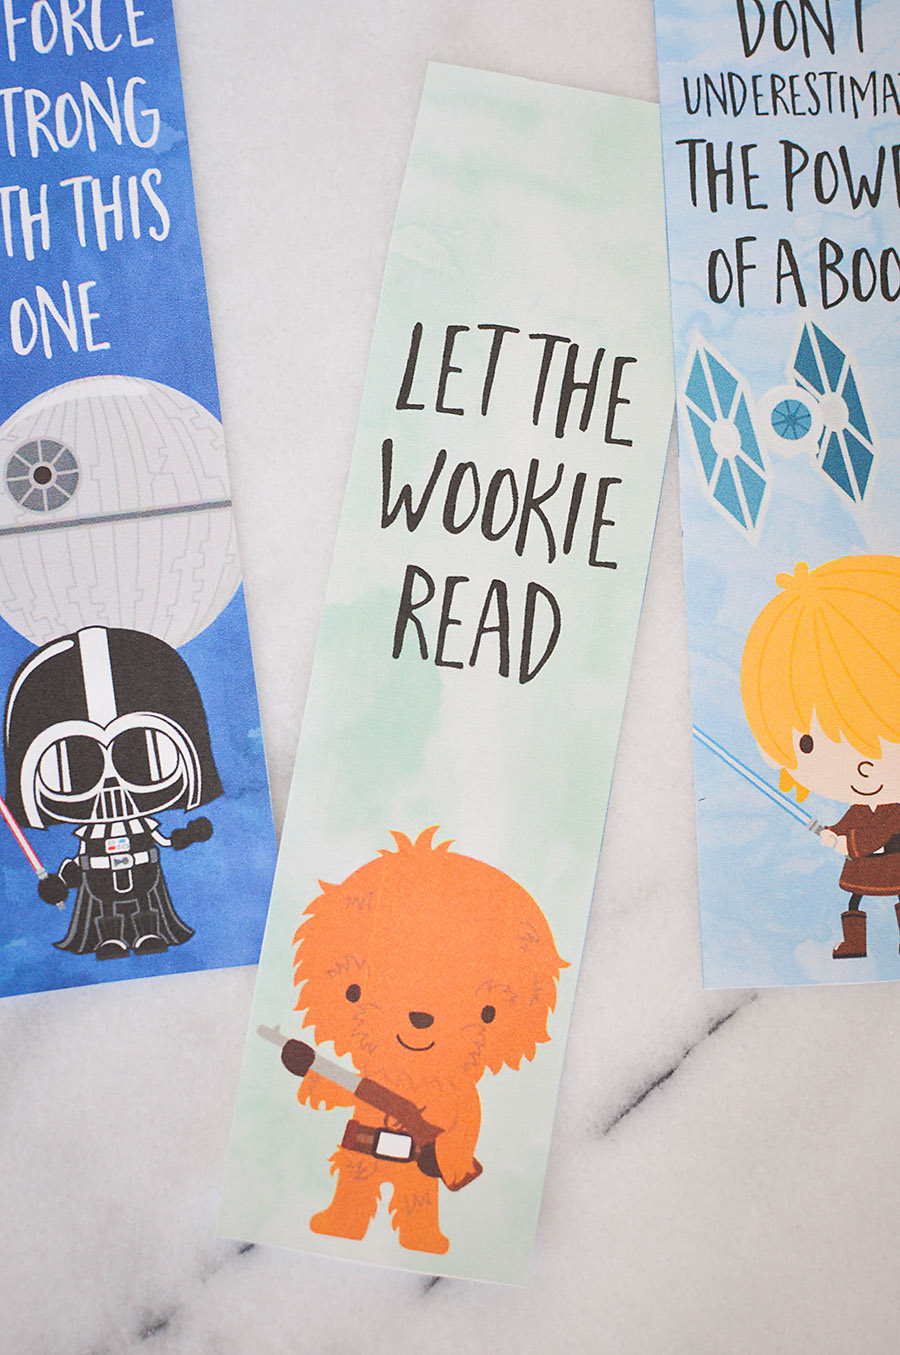 photograph relating to Star Wars Bookmarks Printable named Star Wars Bookmarks - Absolutely free Printables for Children - Our